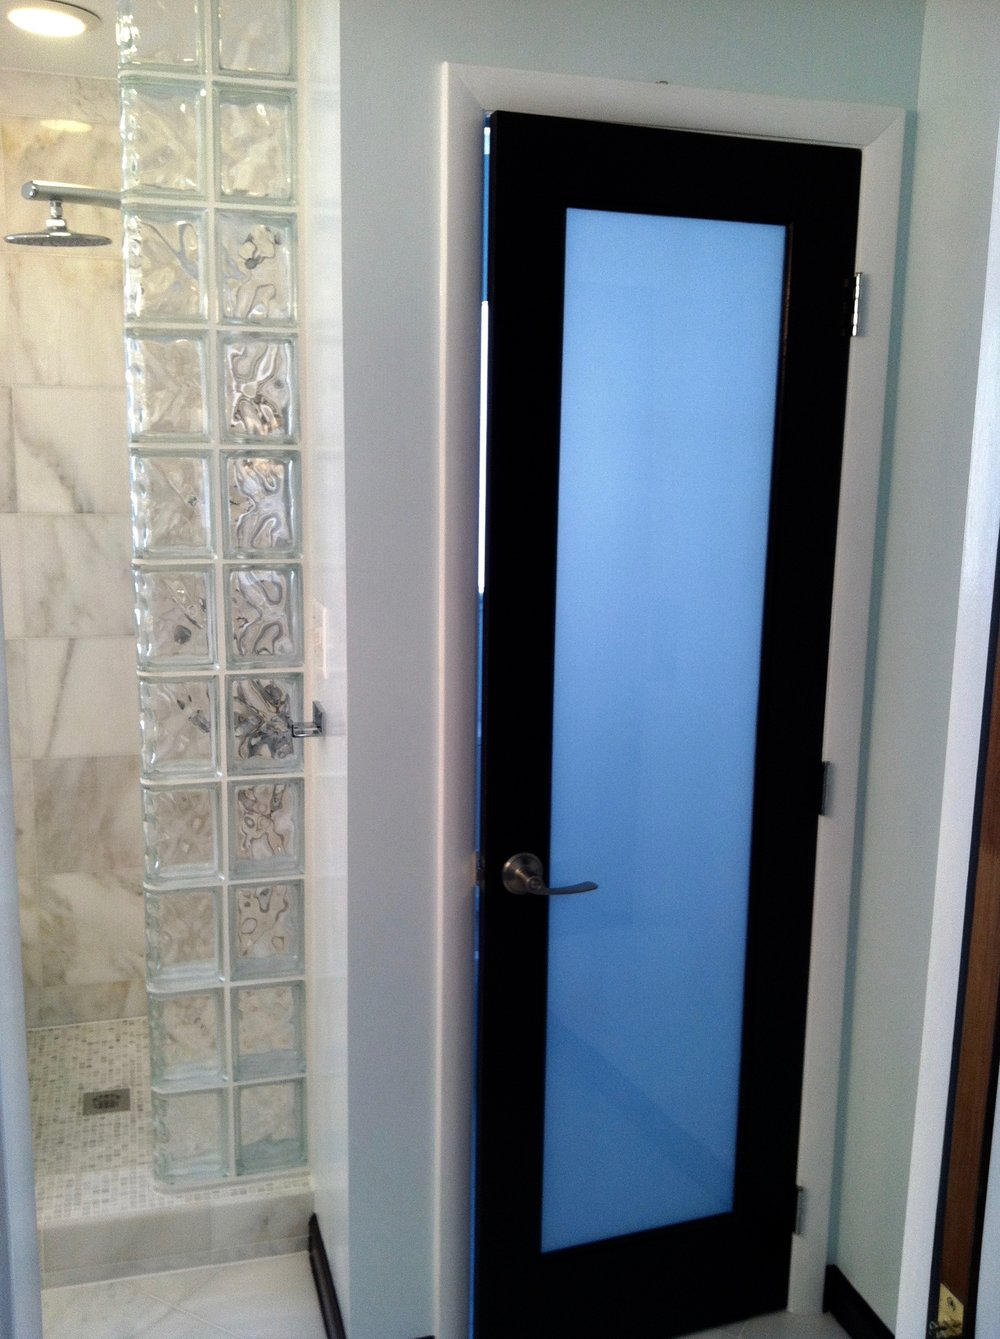 Frosted glass allows lighting while protecting privacy